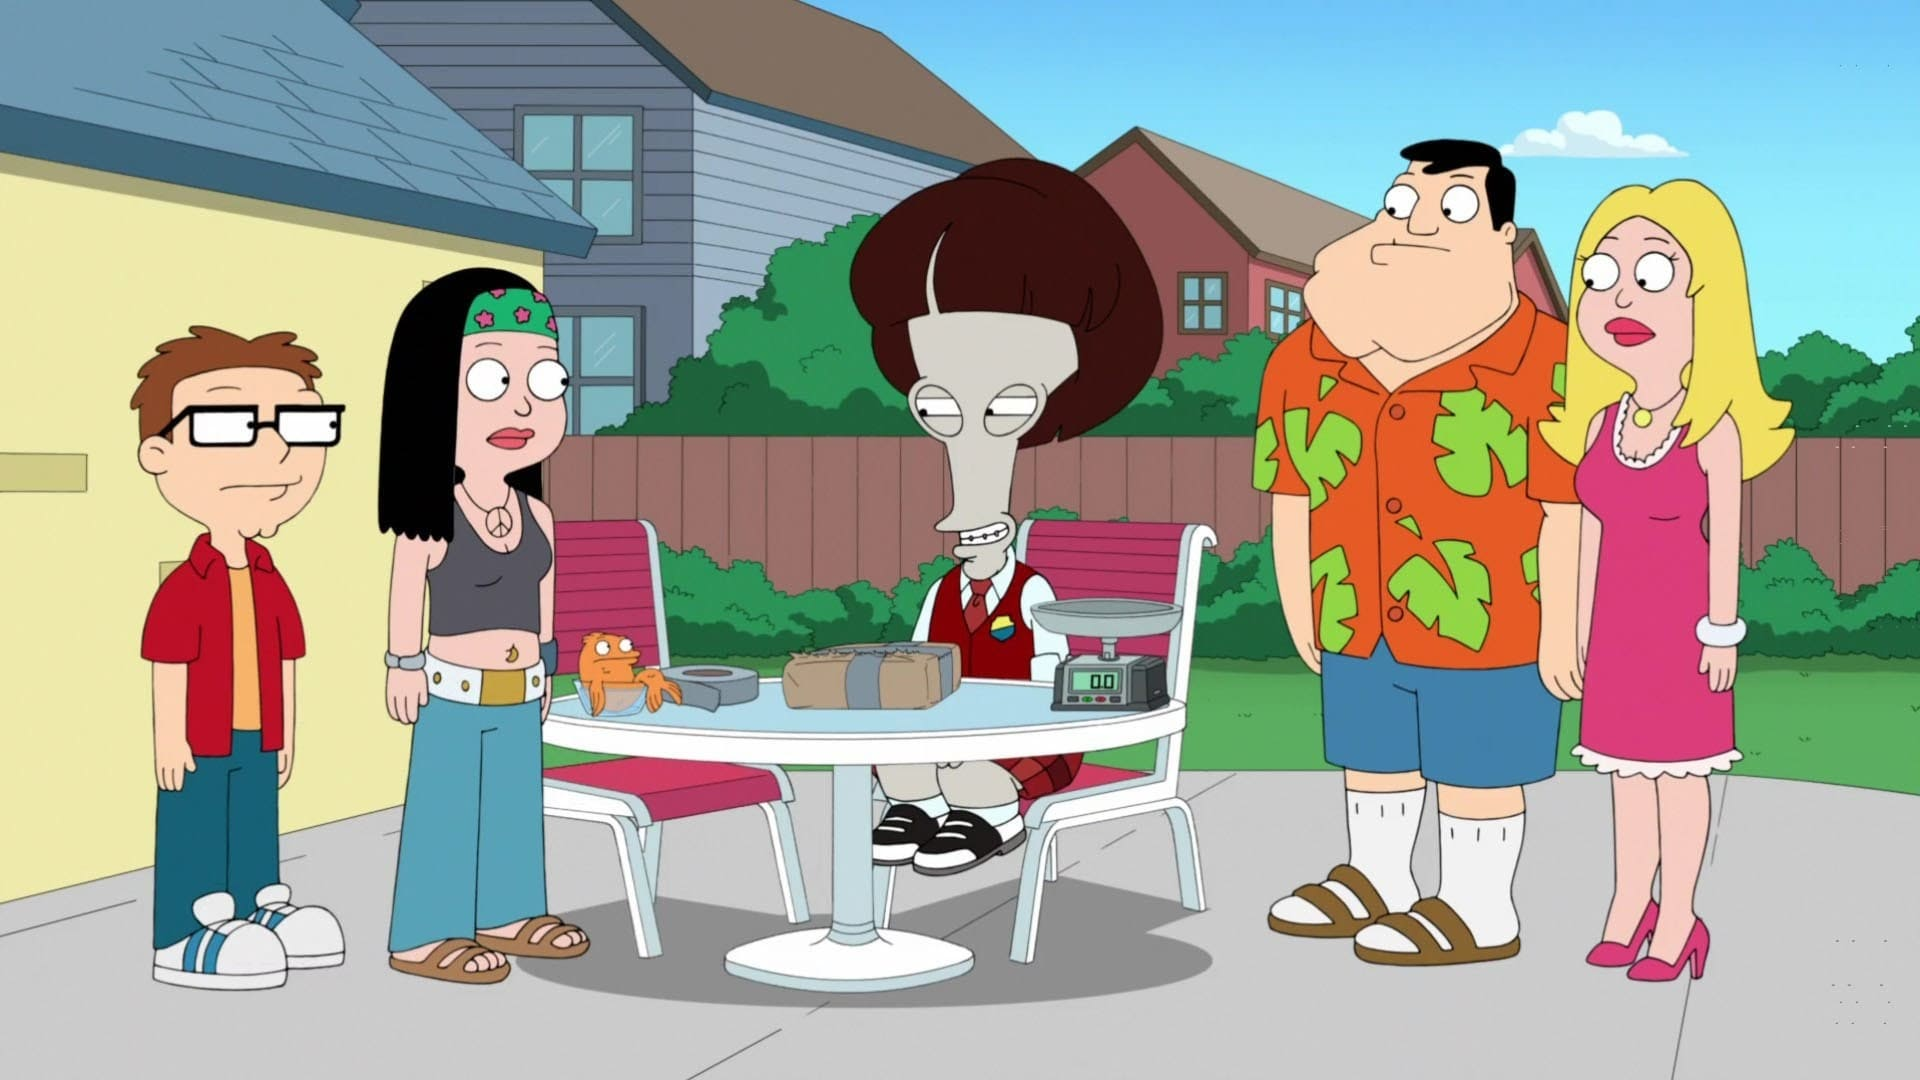 American Dad! - Season 17 Episode 21